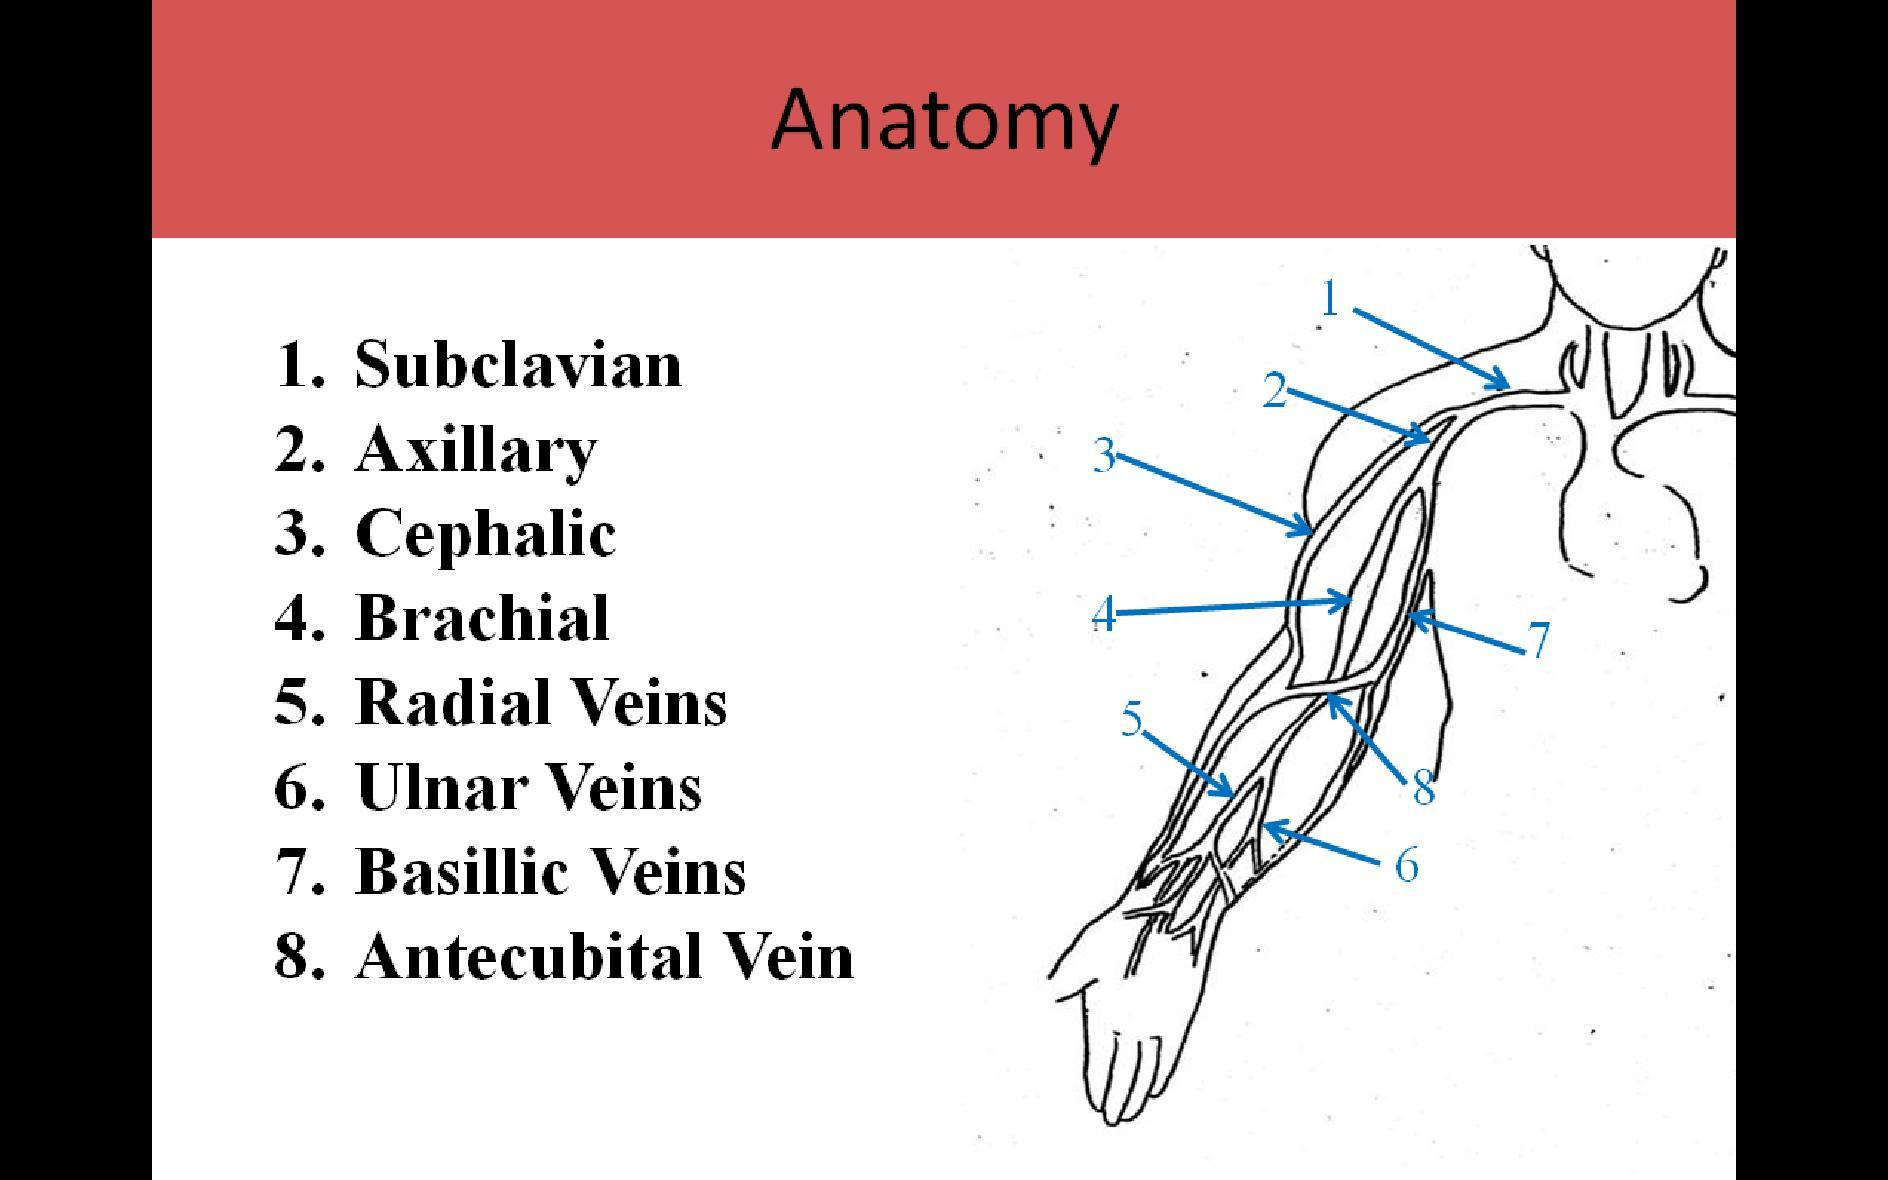 extremity venous pg1, Cephalic vein